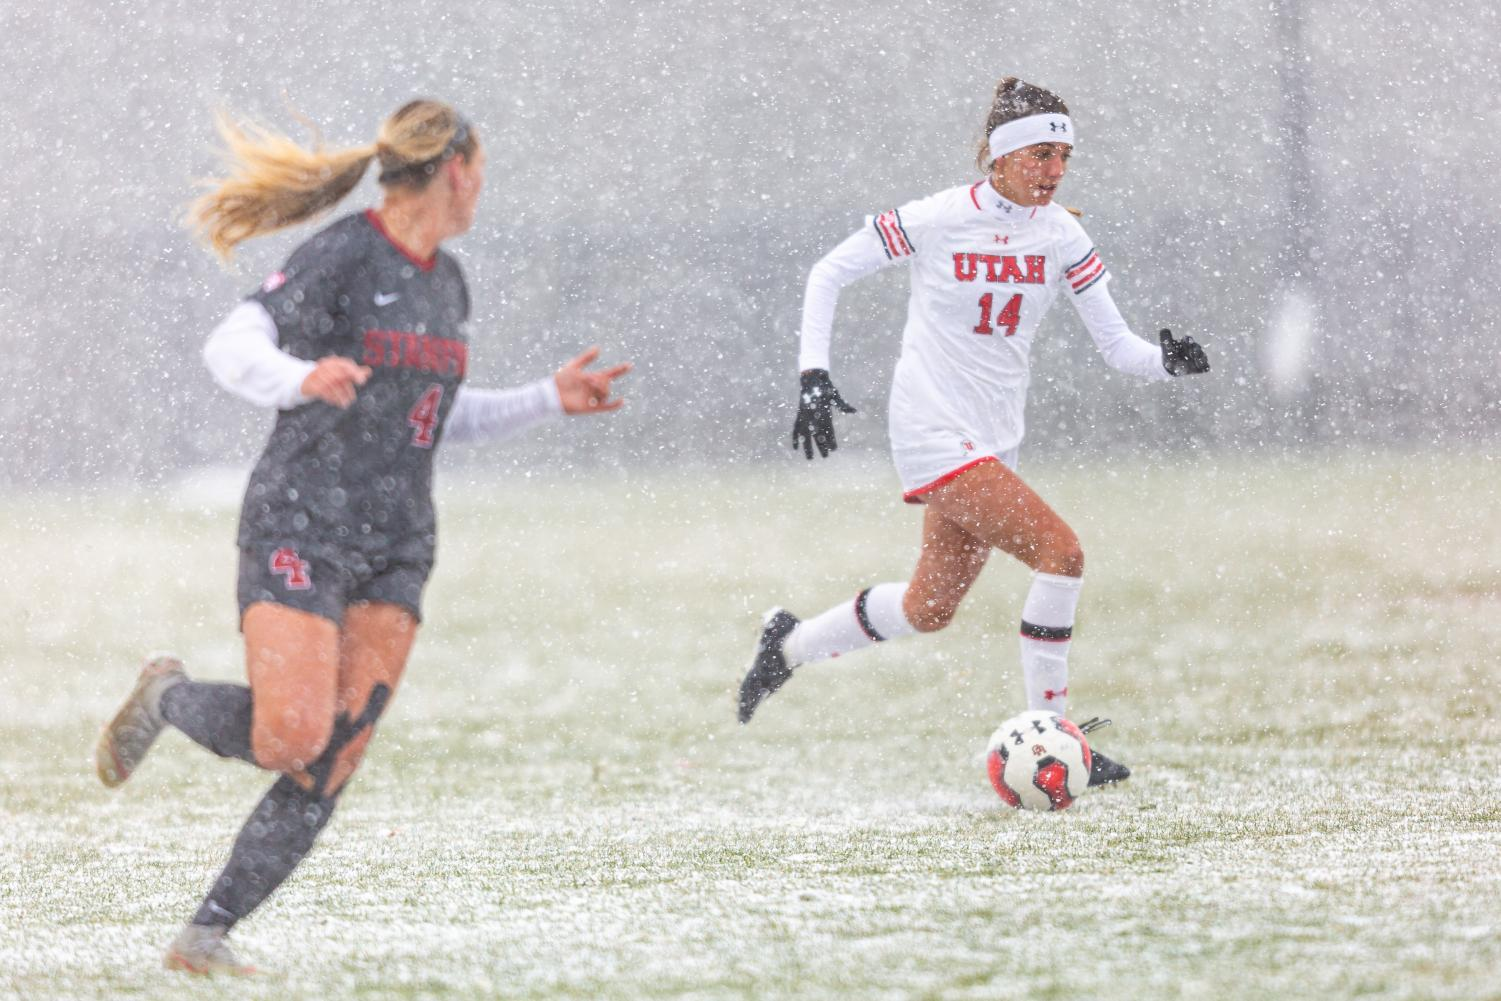 University of Utah Utes Women's soccer team midfielder Courtney Talbot (14) dribbles past during an NCAA soccer match vs. the Stanford Cardinal women's soccer team at the Ute Soccer Field in Salt Lake City, Utah on Sunday, Oct. 27, 2019 (Photo by Abu Asib | The Daily Utah Chronicle)